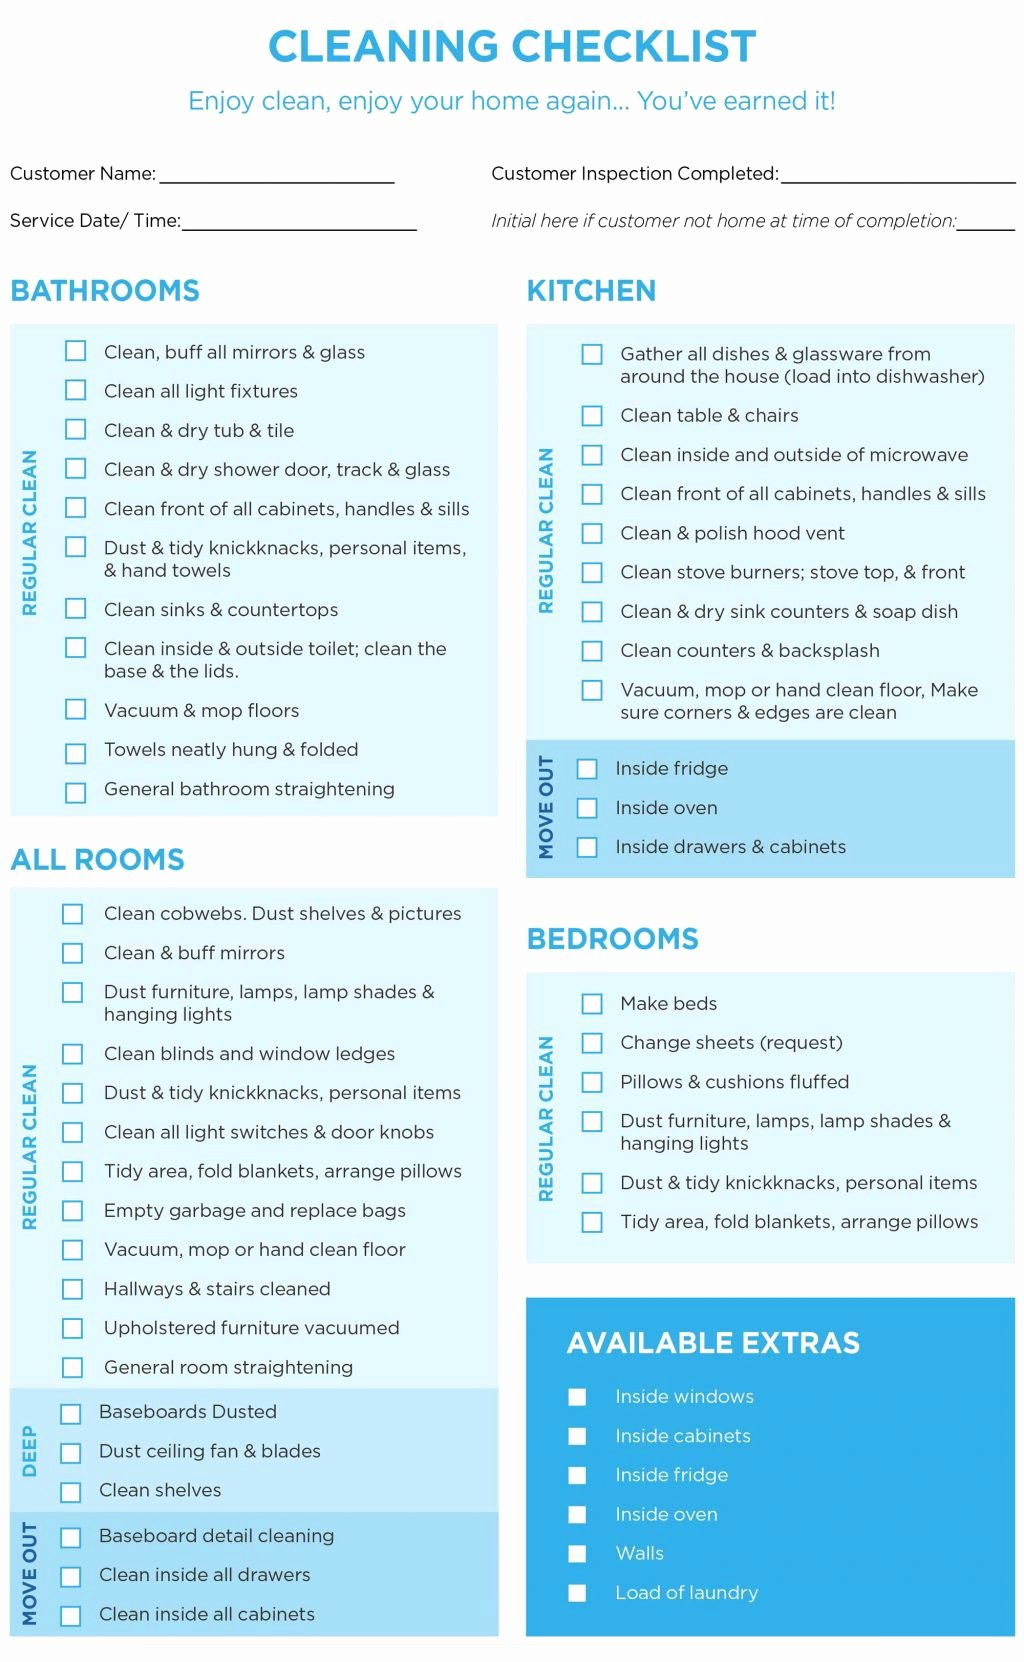 Cleaning Checklist Template Word Fresh 40 Helpful House Cleaning Checklists for You